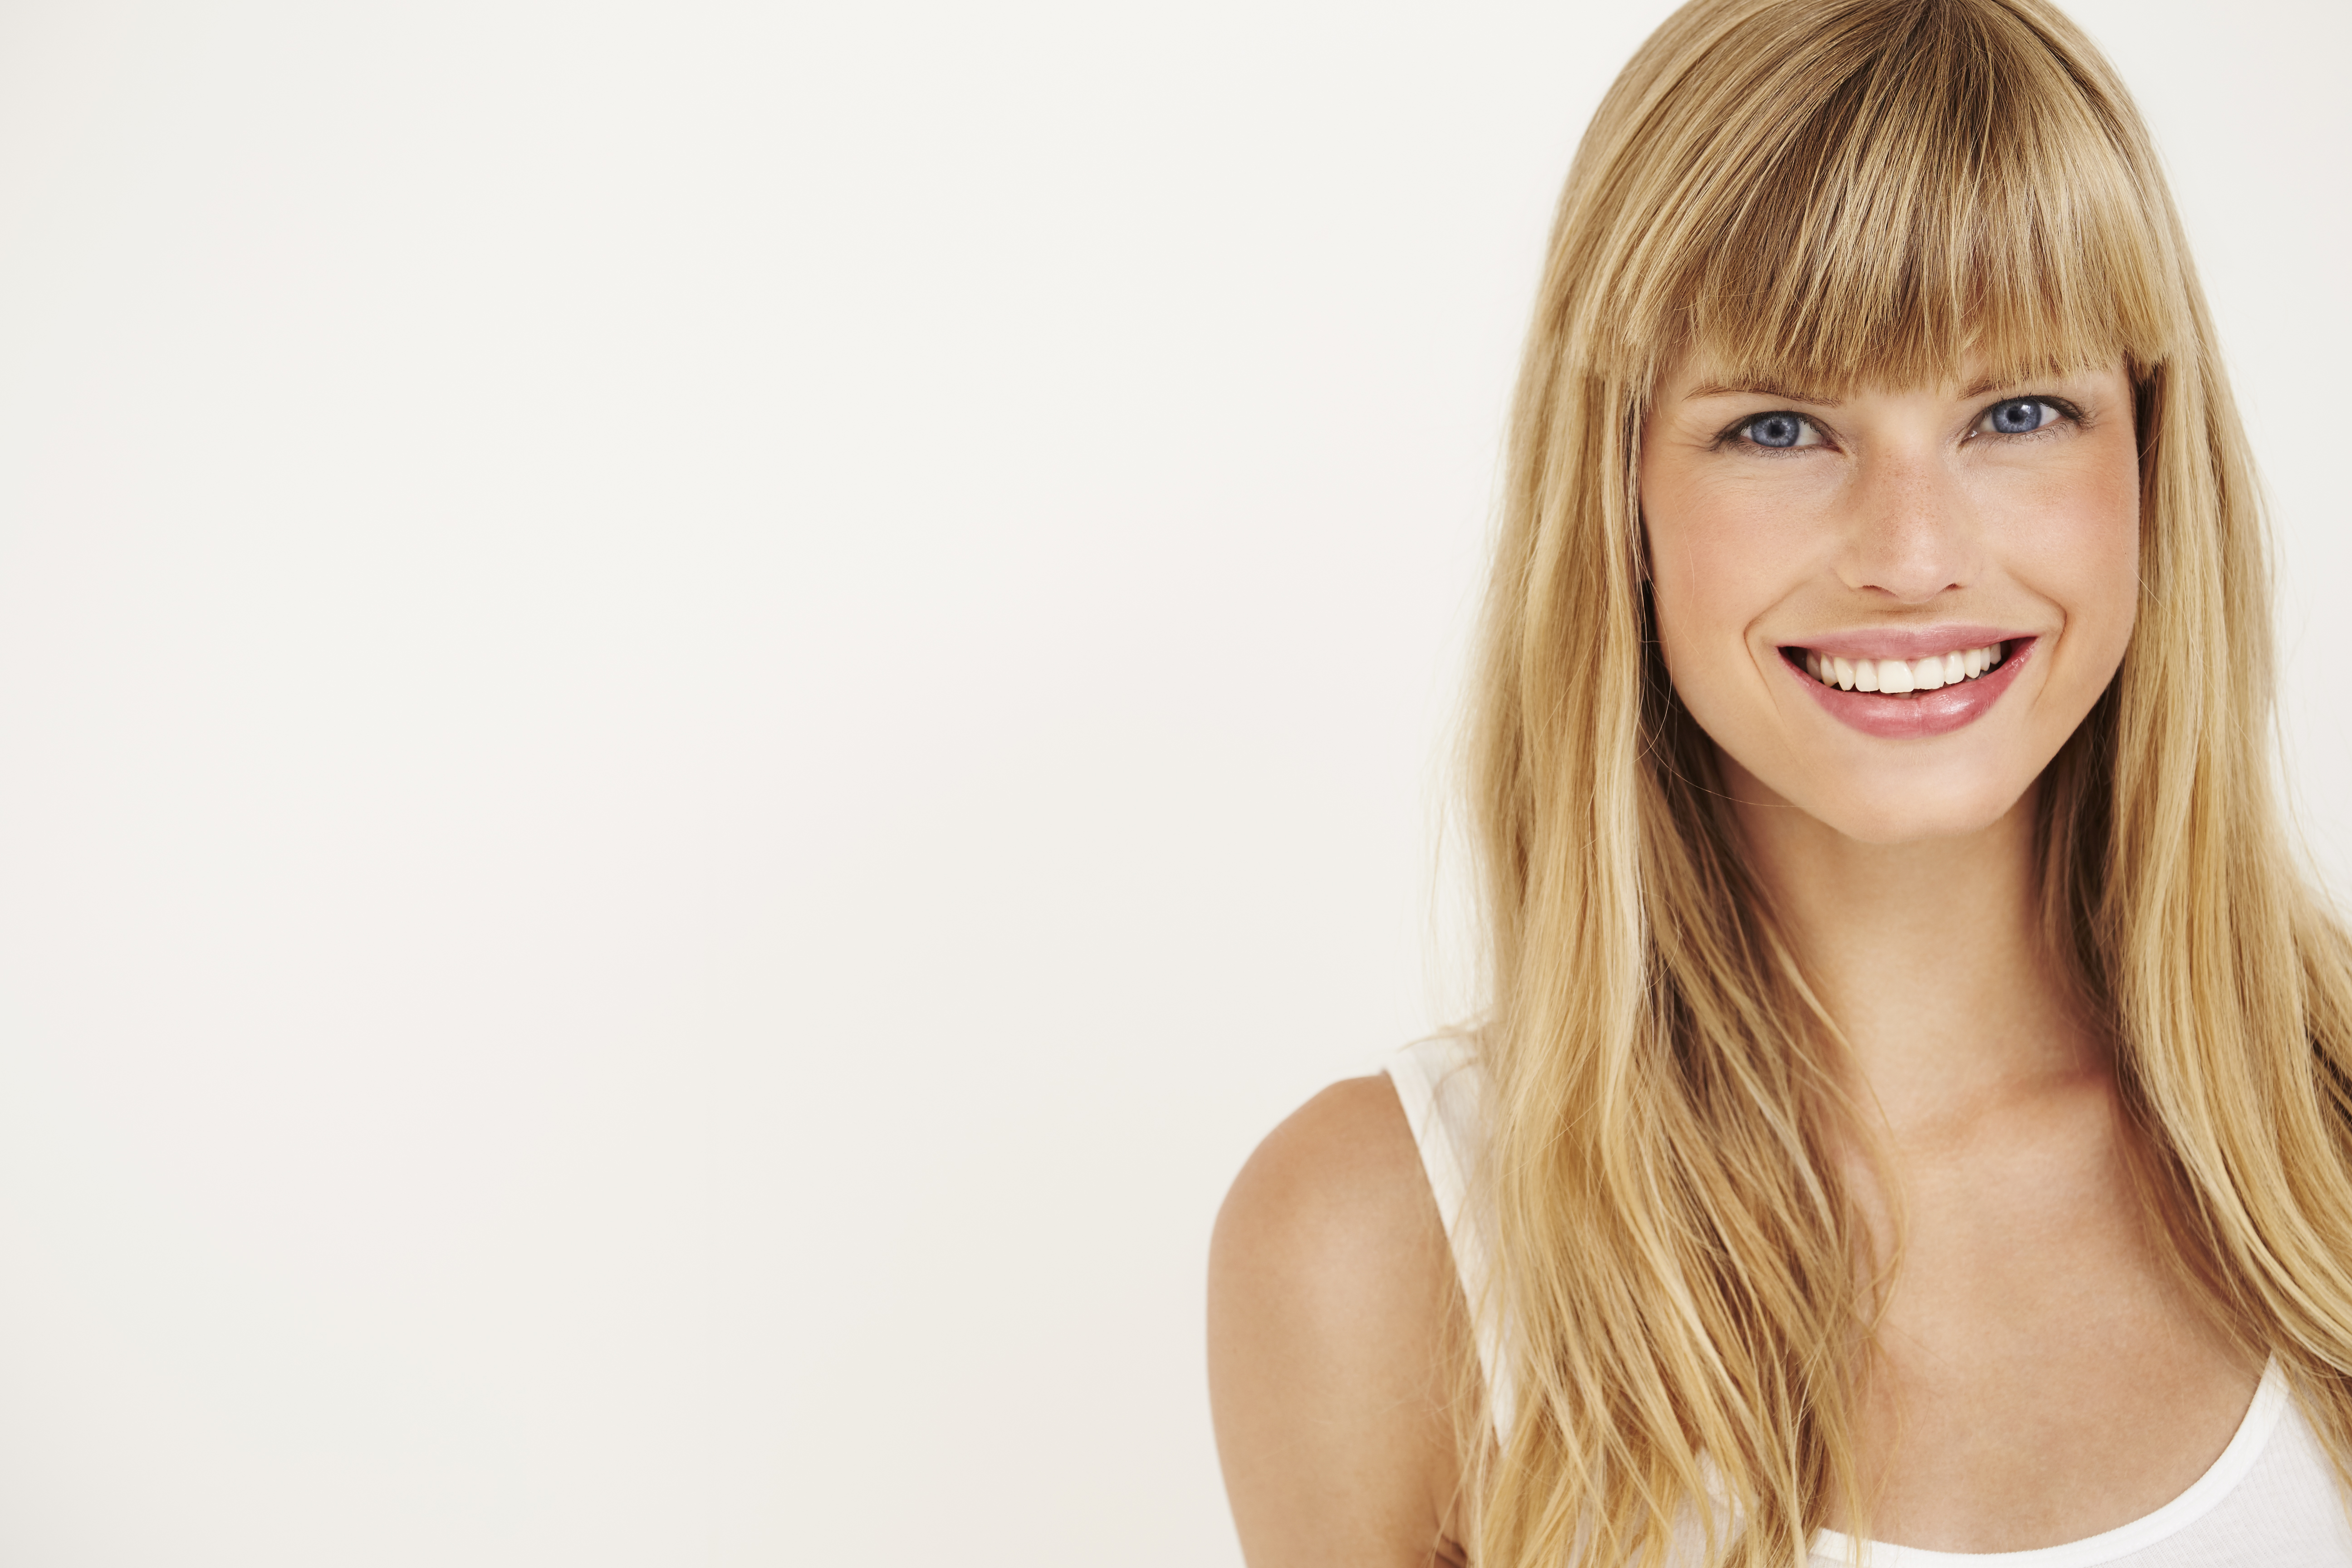 who has the best teeth whitening west palm beach?